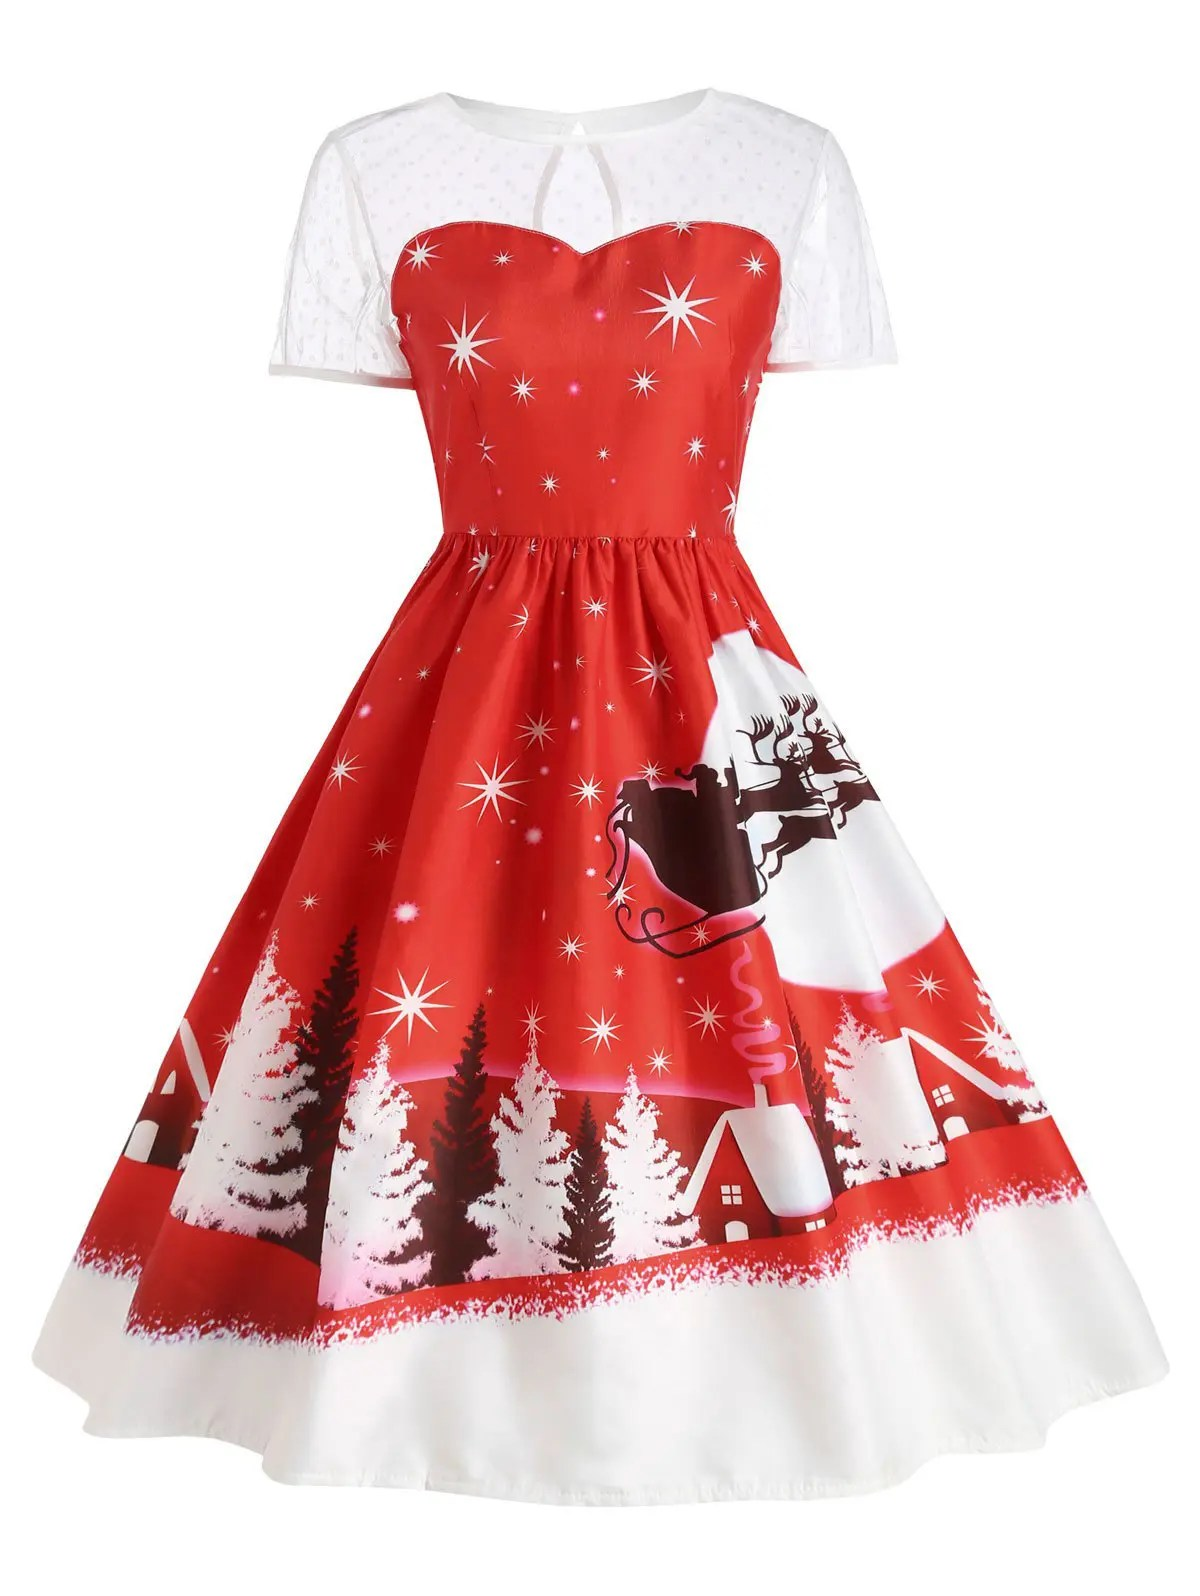 Kerst Jurk 2019 Santa Claus Deer Vintage Christmas Dress Rosegal